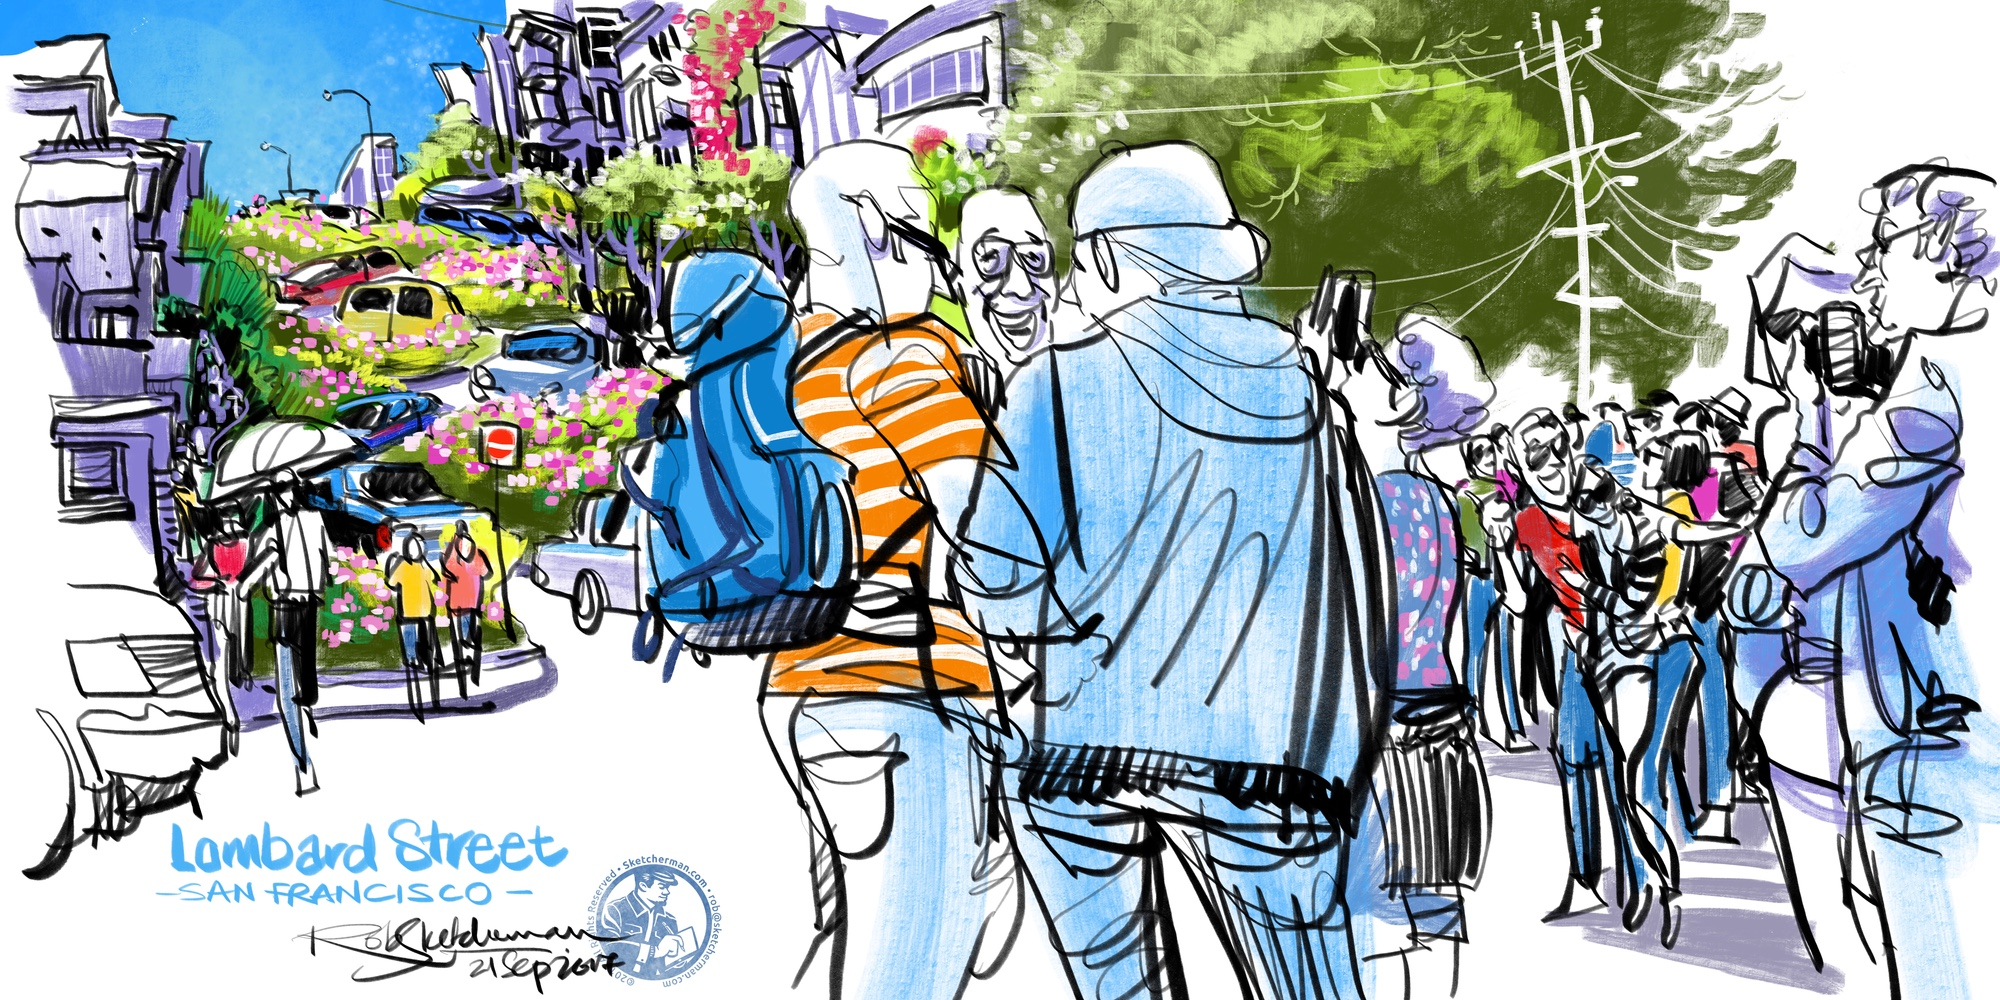 US_2017-Lombard St crowds-San Francisco-Sketcherman.jpg